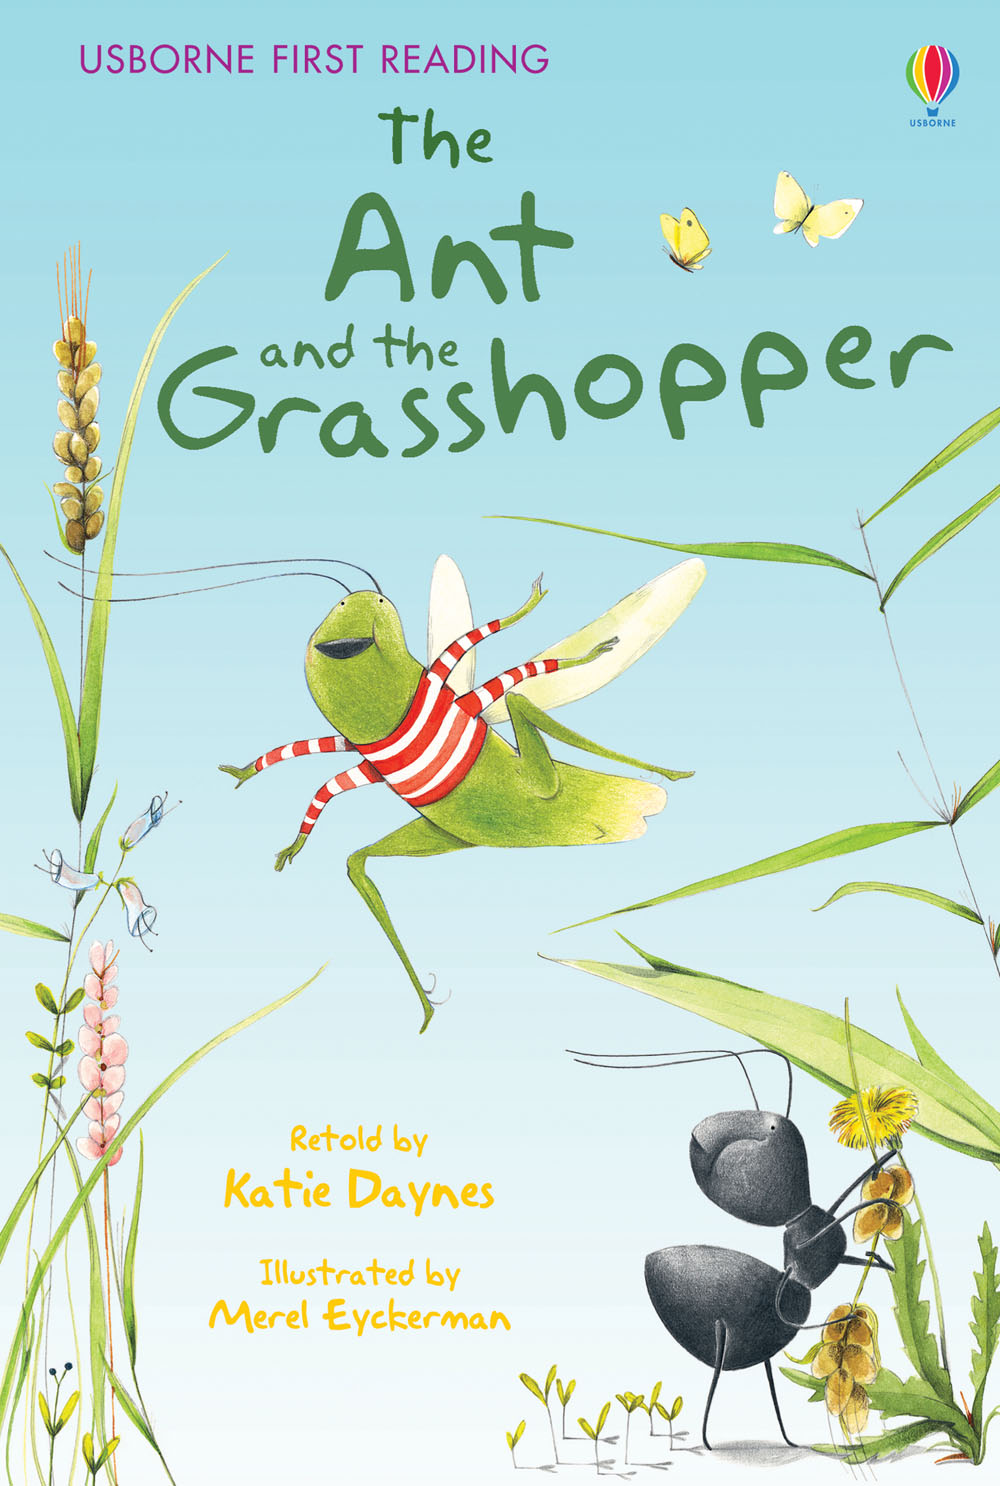 photograph about The Ant and the Grasshopper Story Printable known as The Ant and the Grhopper\u201d at Usborne Childrens Publications